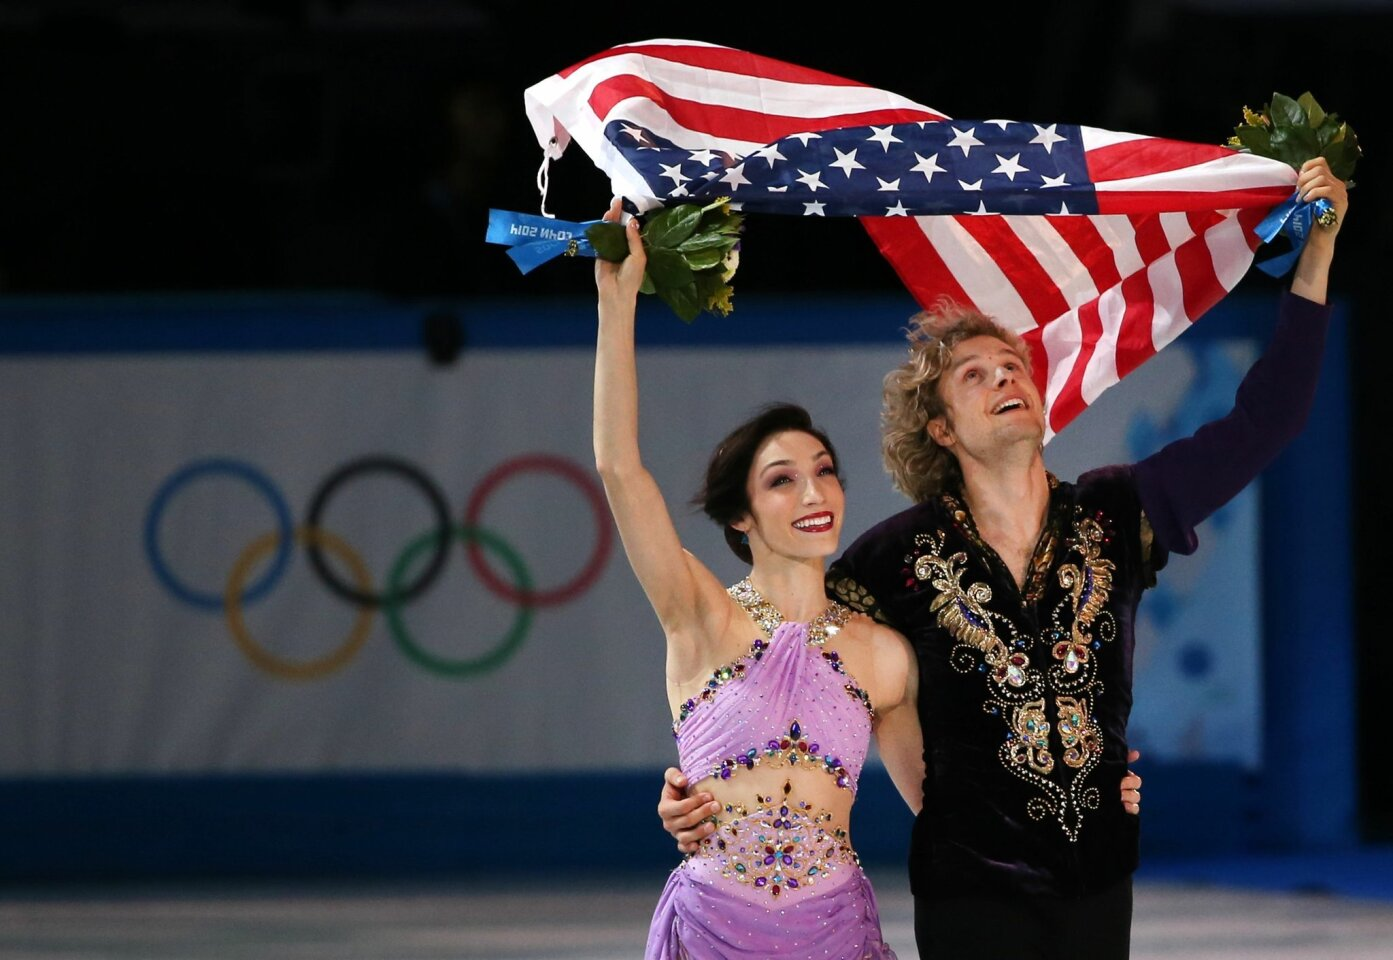 Taking a victory lap, Meryl Davis and Charlie White wave to the audience after winning Gold.